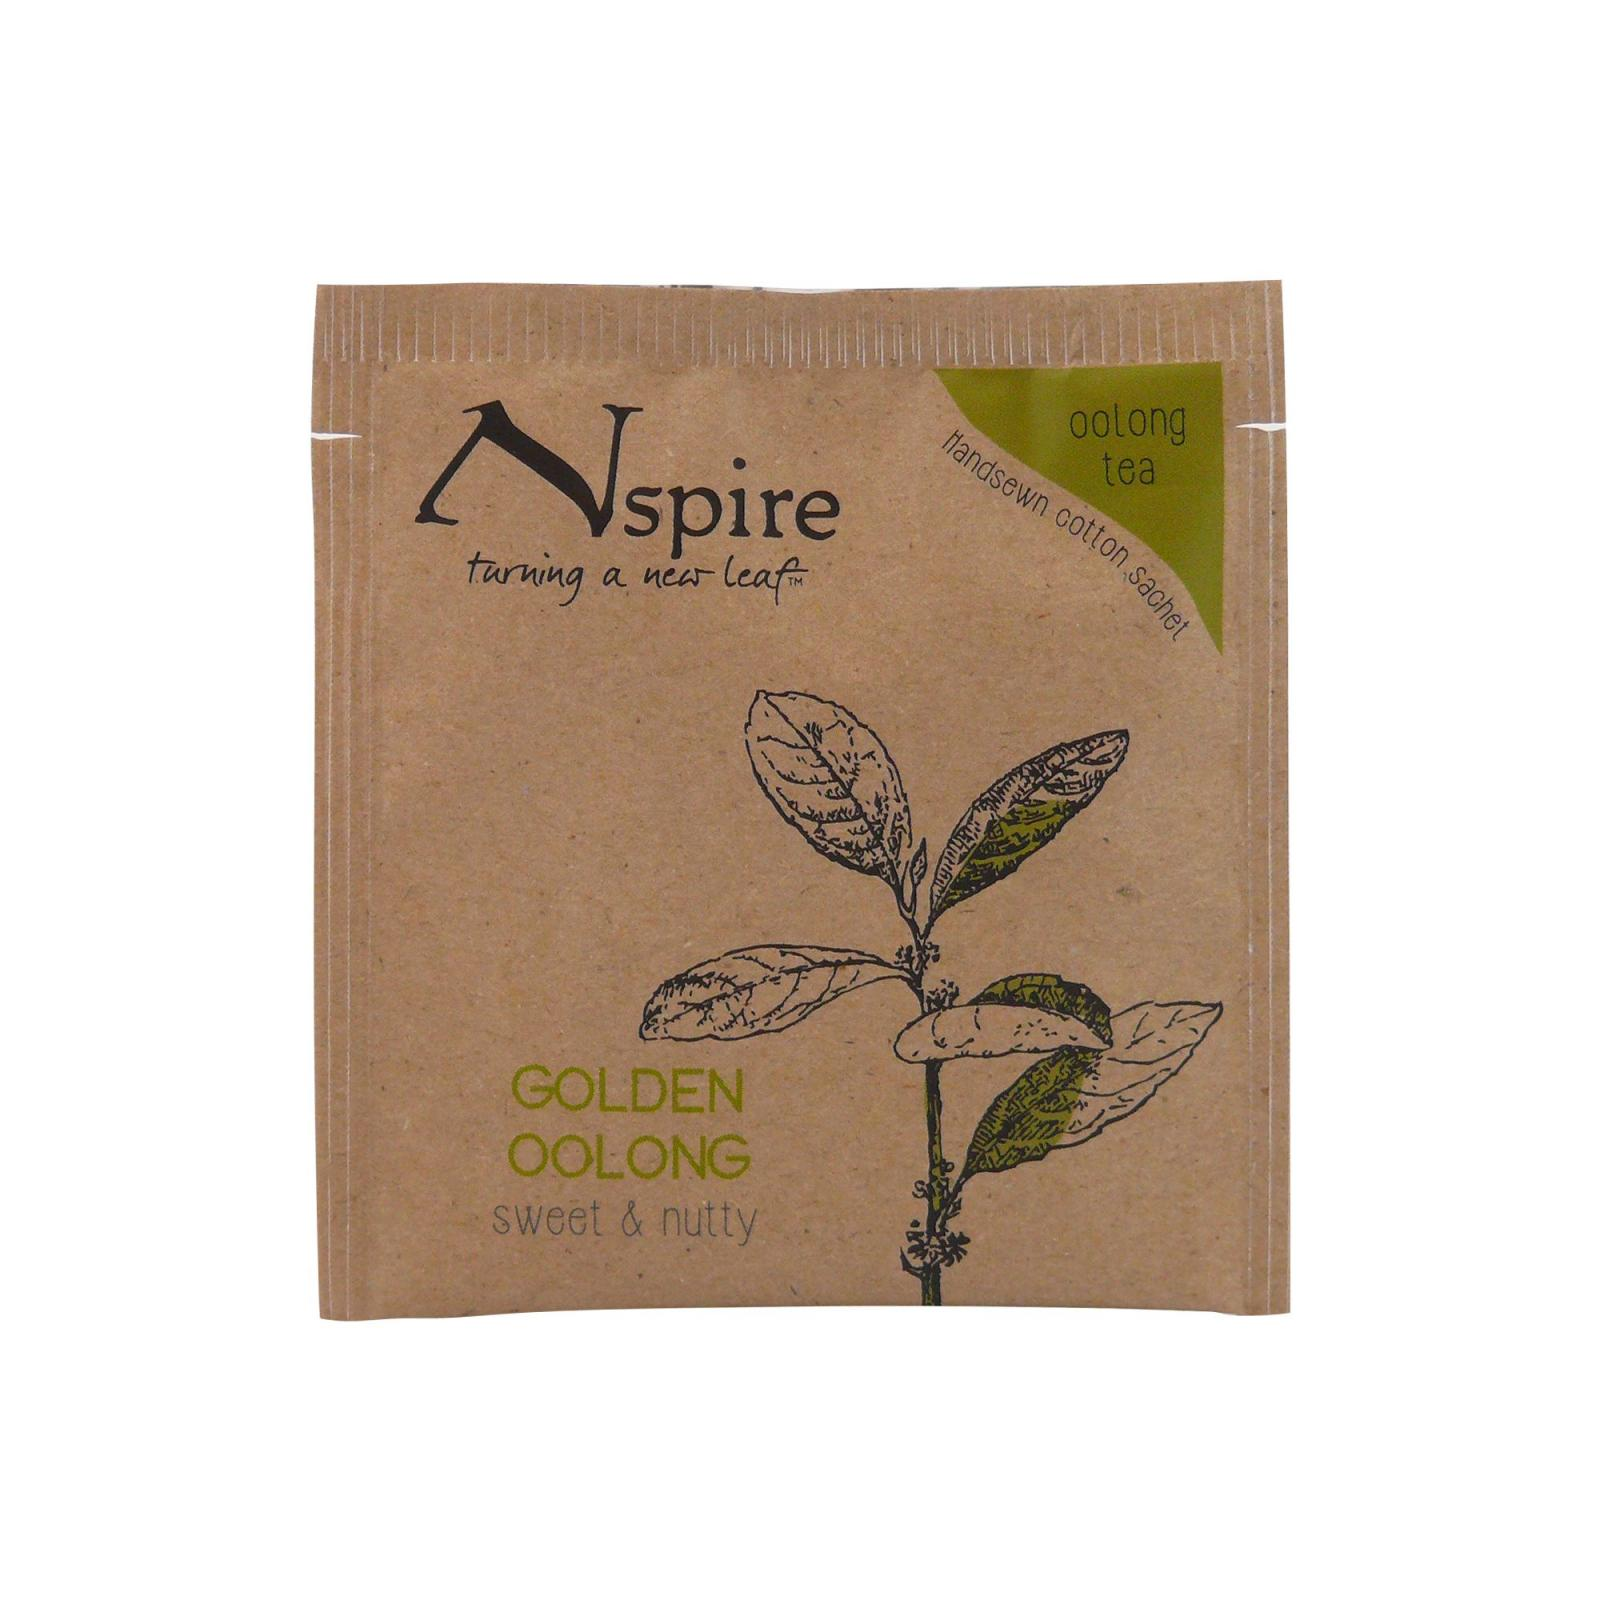 Numi Organic Tea Čaj Golden Oolong, Nspire Tea 3 g, 1 ks